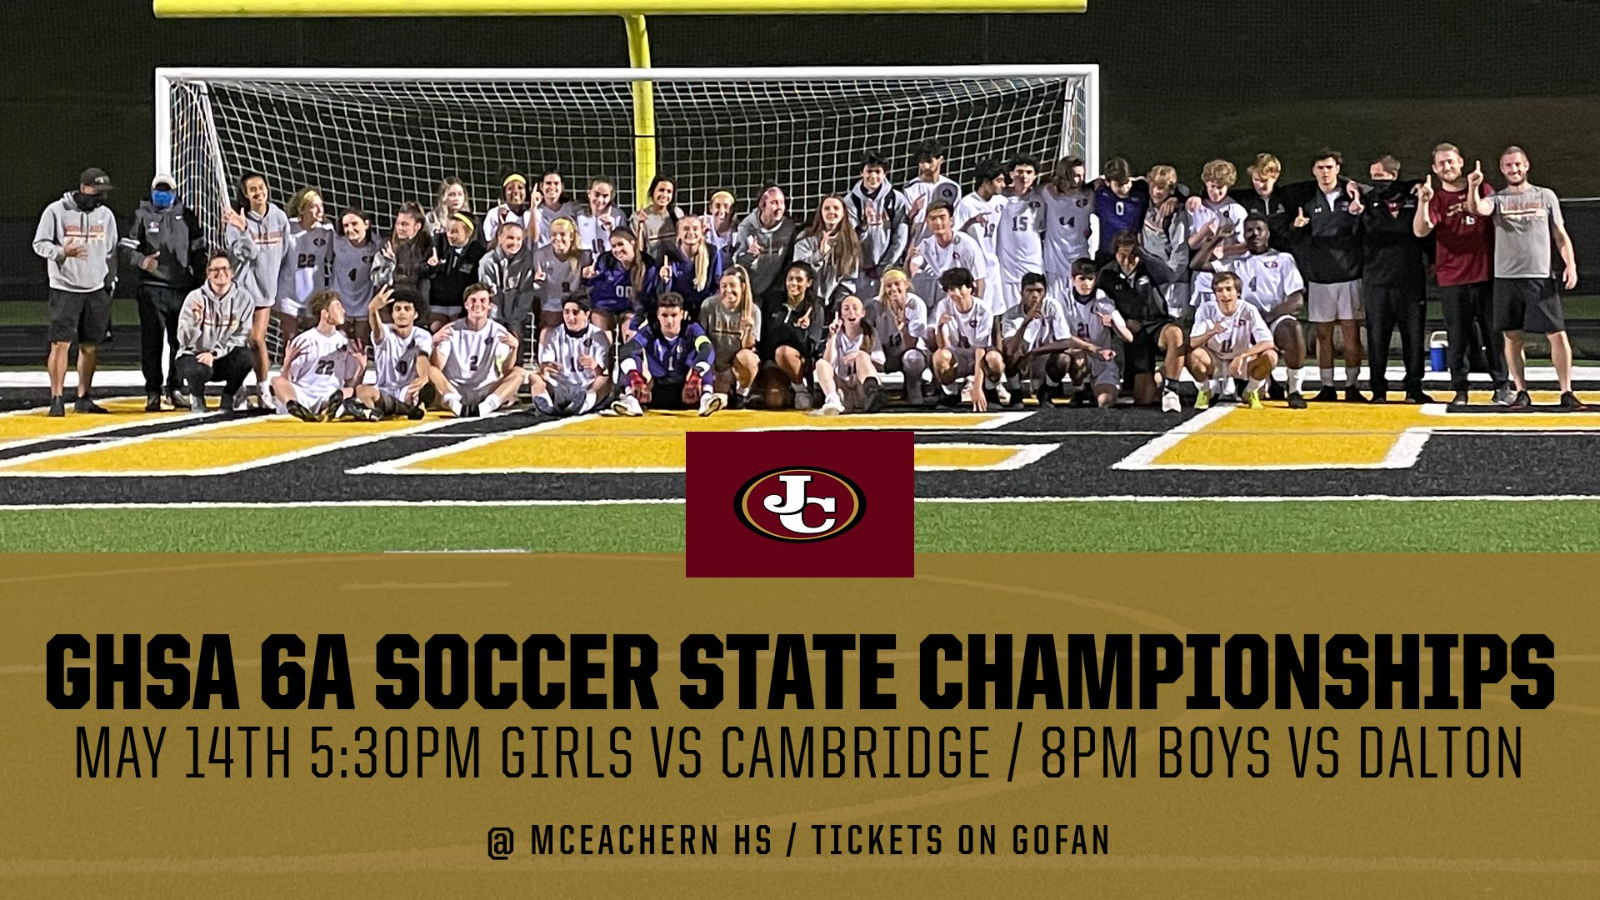 GHSA 6A Soccer State Championships